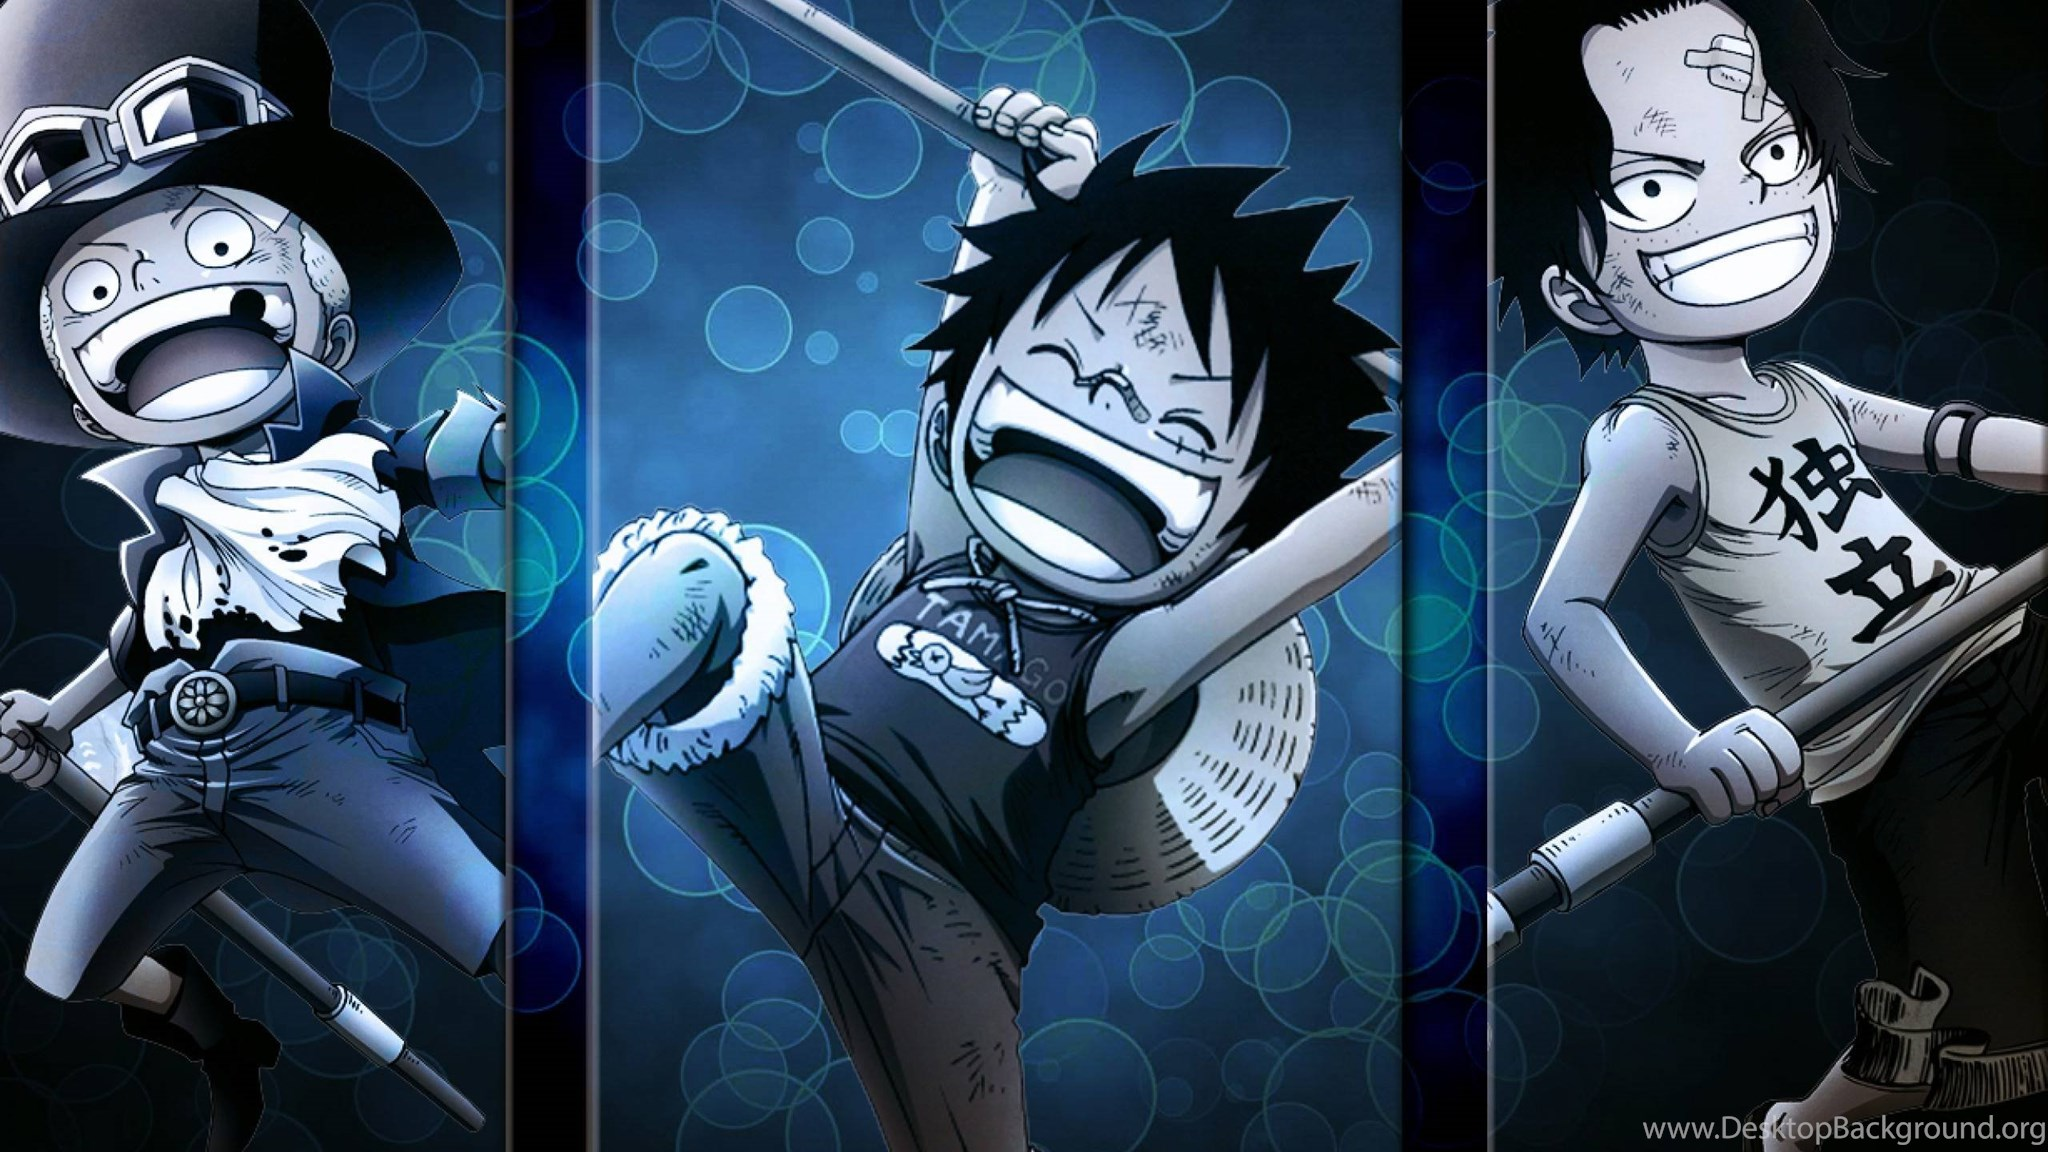 One Piece New World Sabo Wallpapers 10567 Hd Wallpapers Site Desktop Background